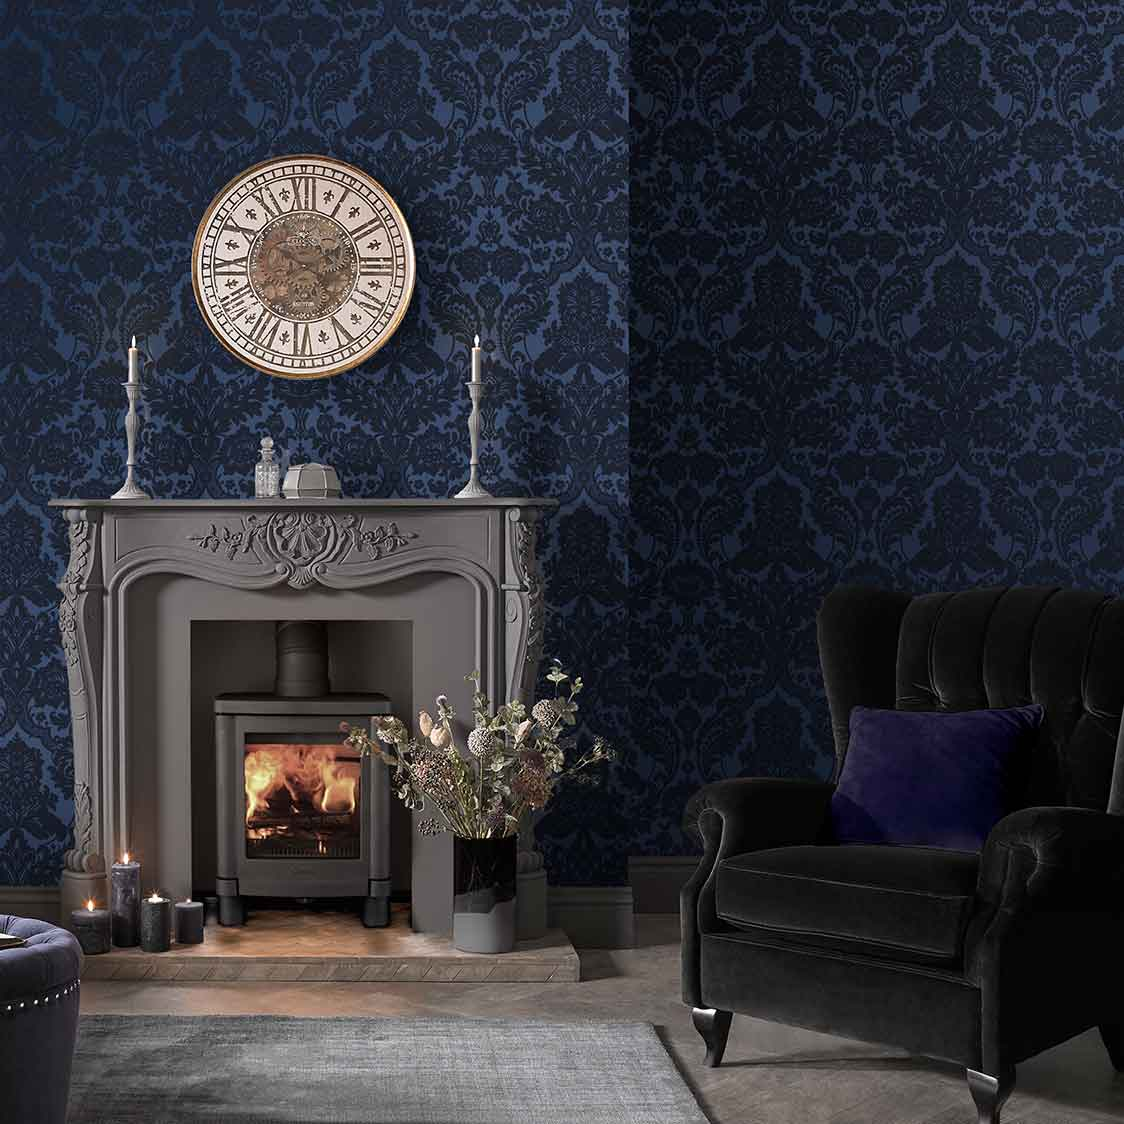 wallpaper designs for living room sydney | Wallpaper Designs | Wall Coverings | Graham & Brown